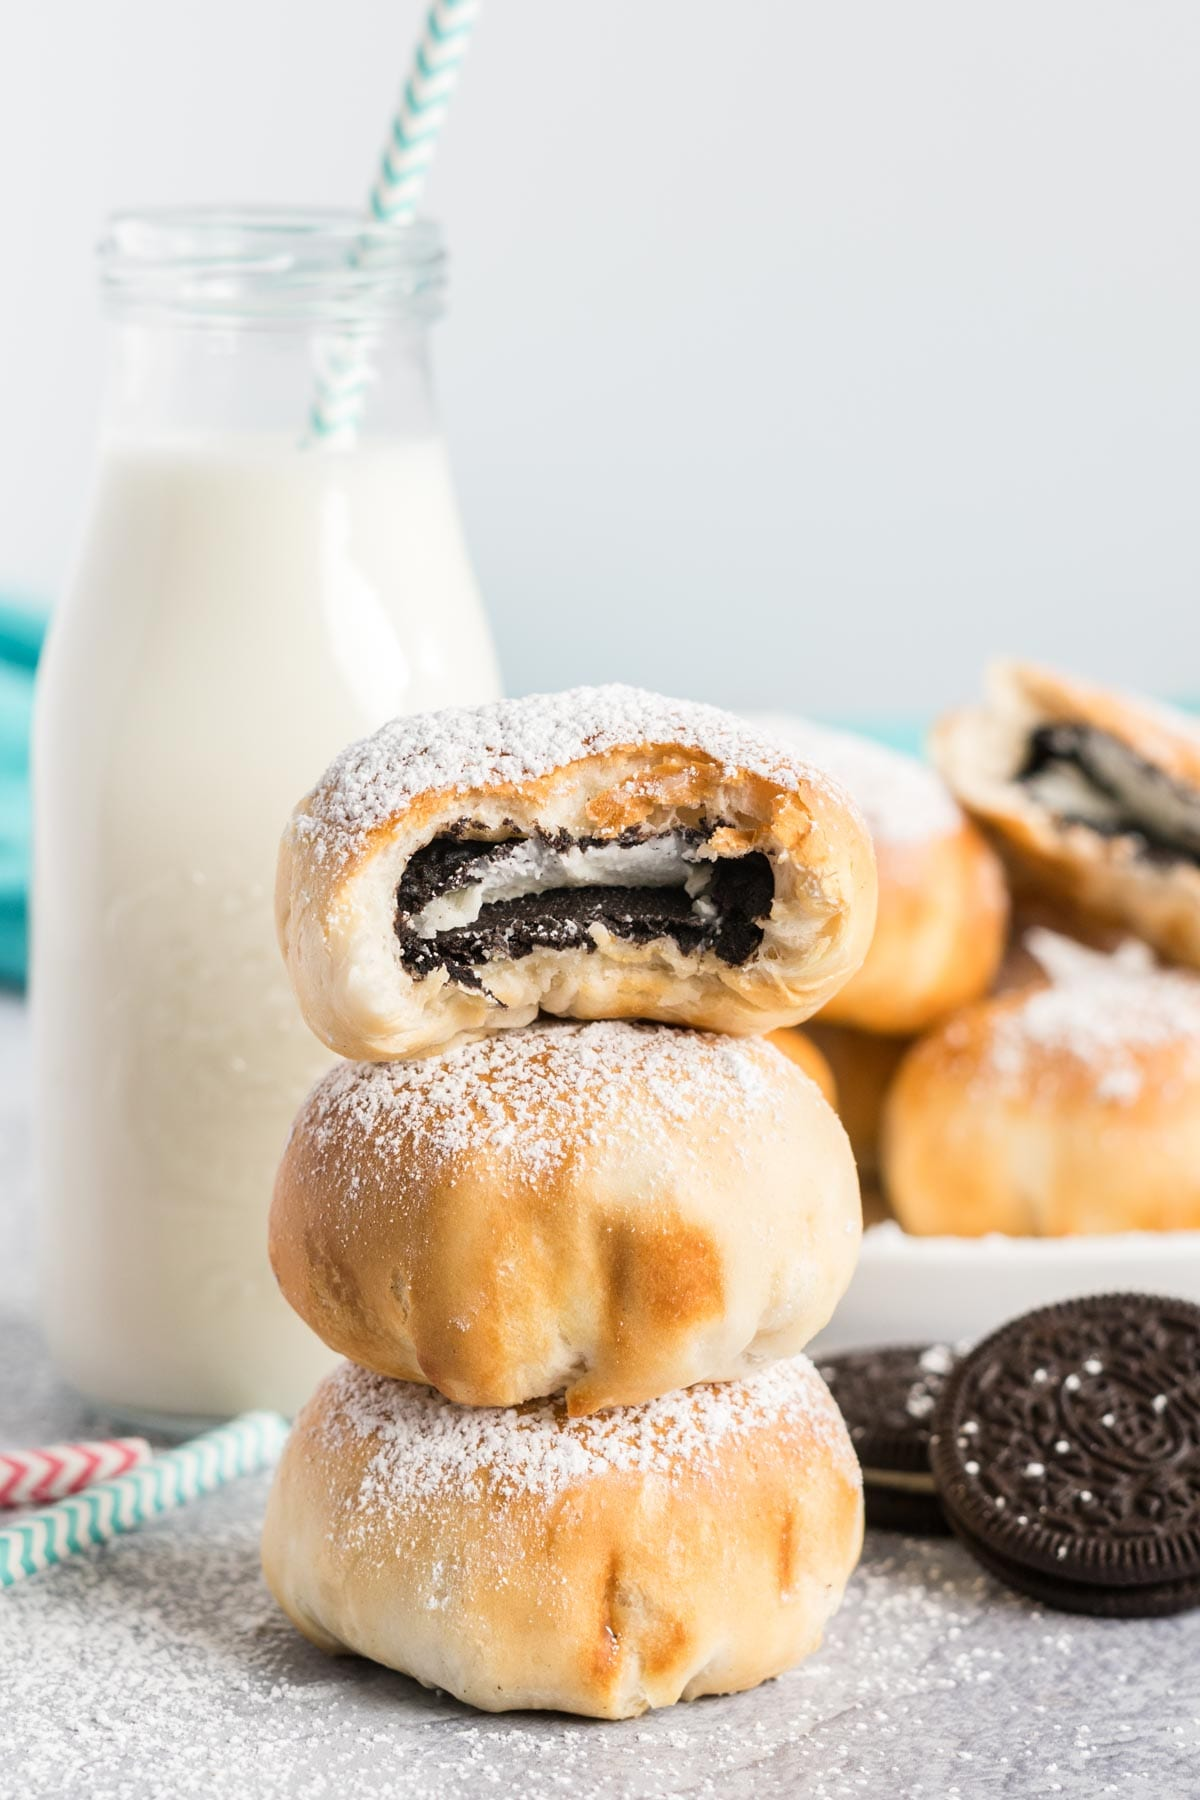 Stack of air fried Oreos and a bottle of milk with a straw.